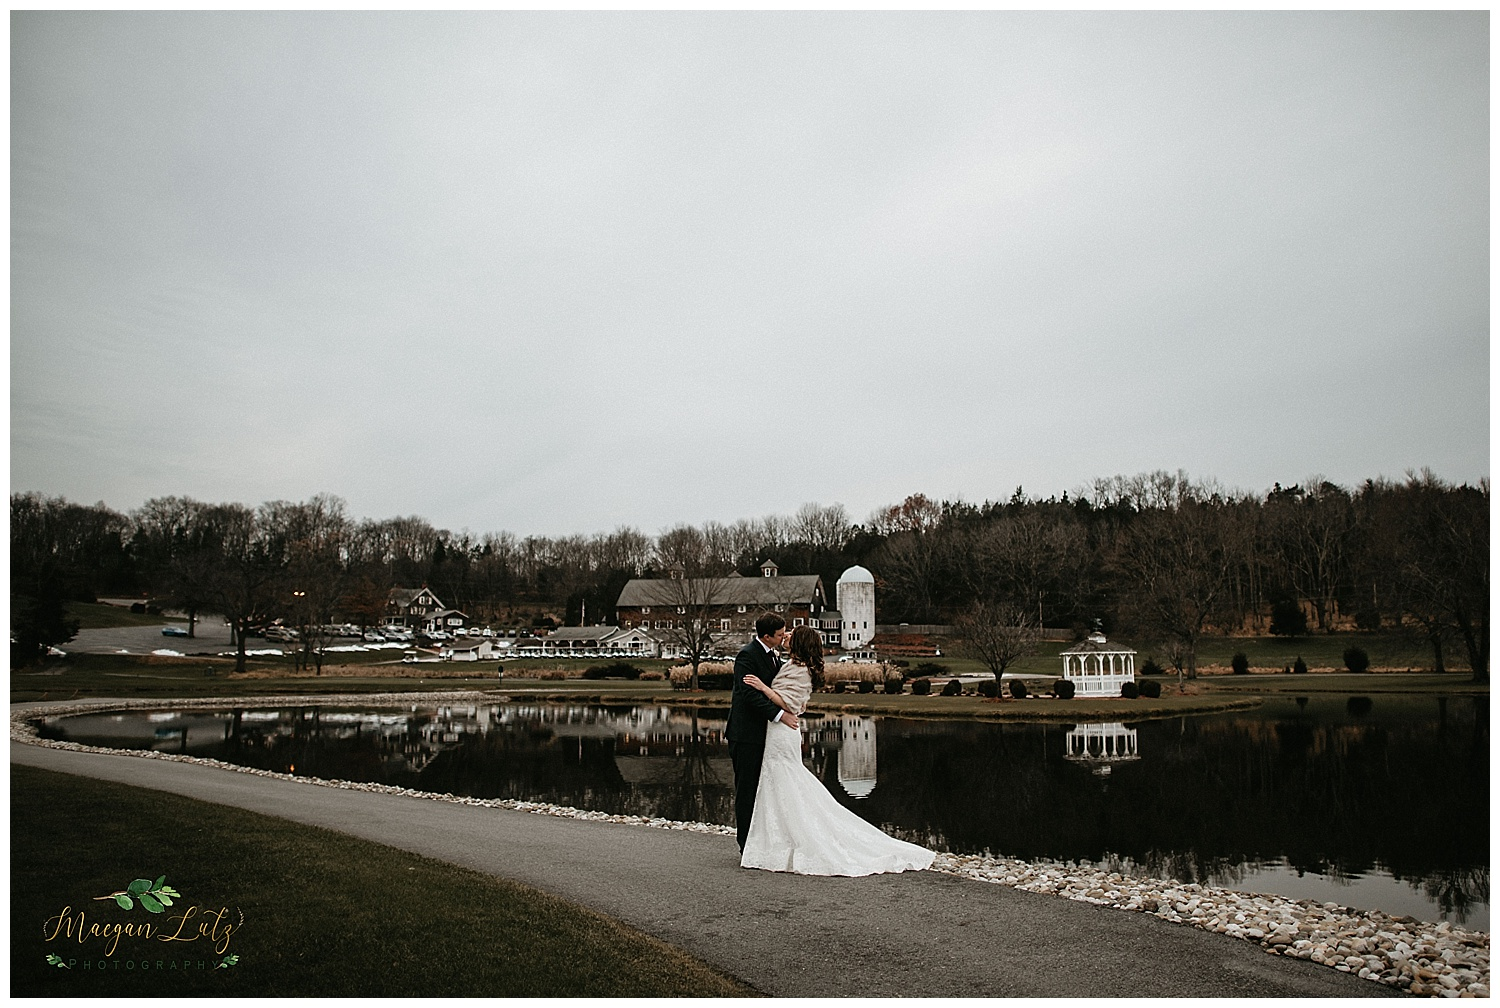 NEPA-wedding-photographer-at-Farmstead-Golf-and-country-club-LaFayette-Township-New-Jersey_0058.jpg